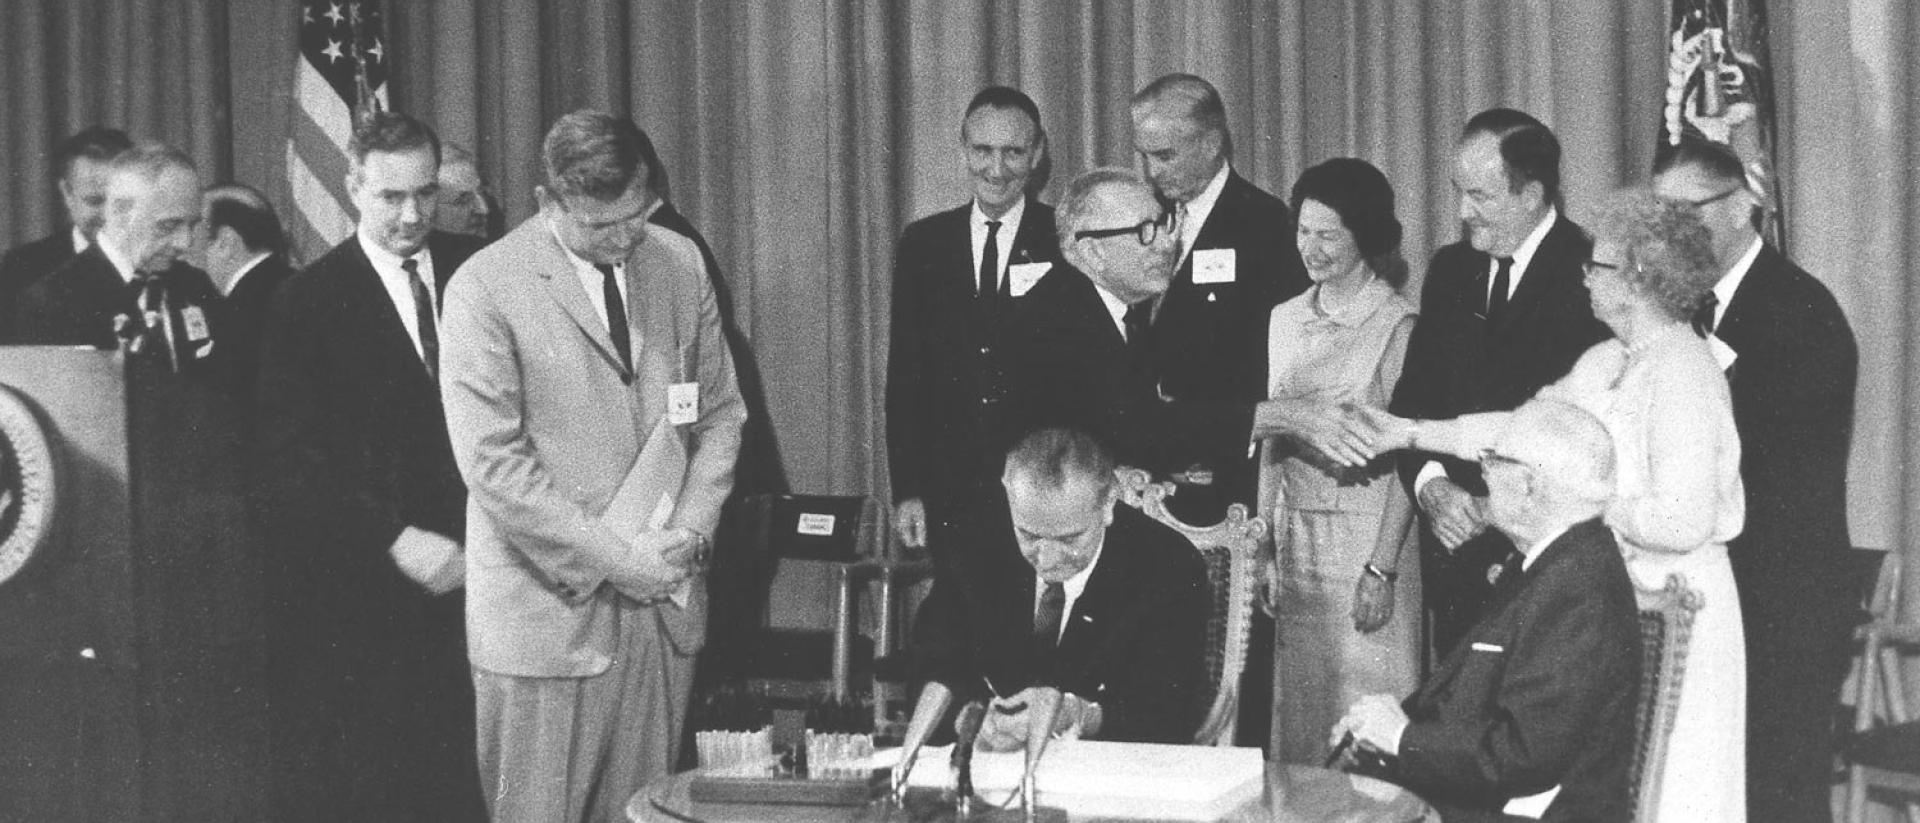 Signing of Medicare